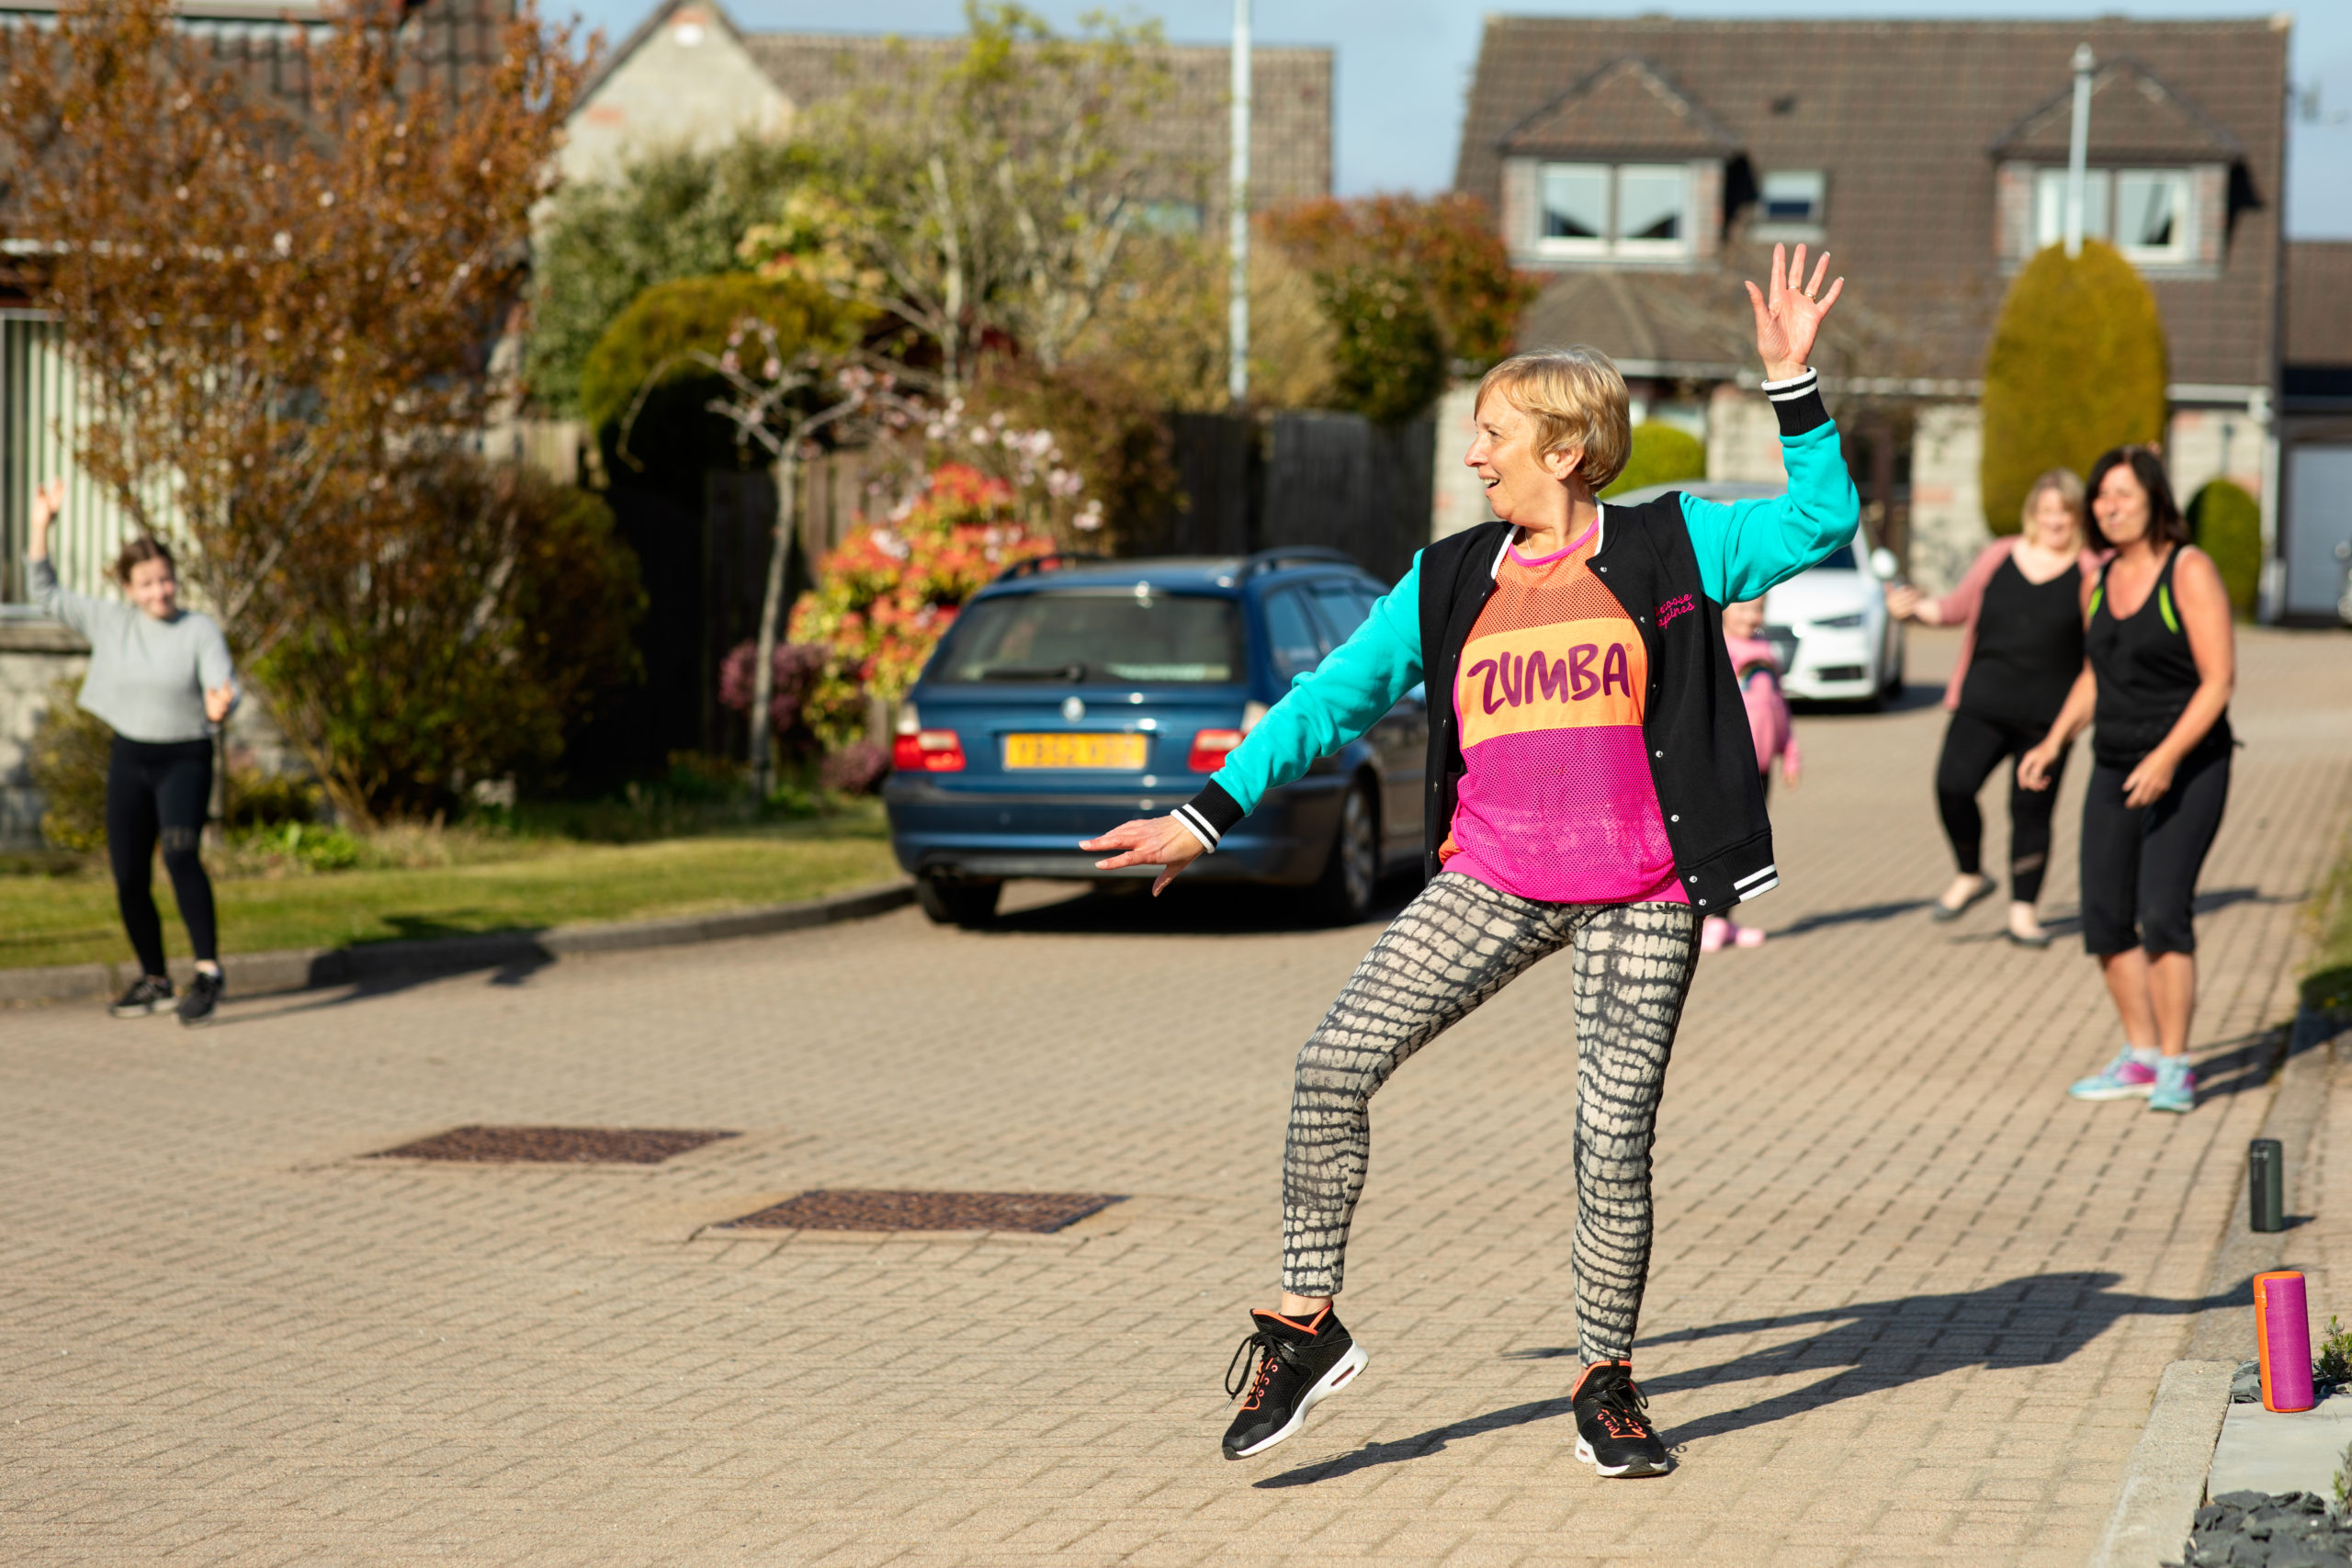 Zumba instructor Gillian Low has taken her classes to the streets of Kingswells